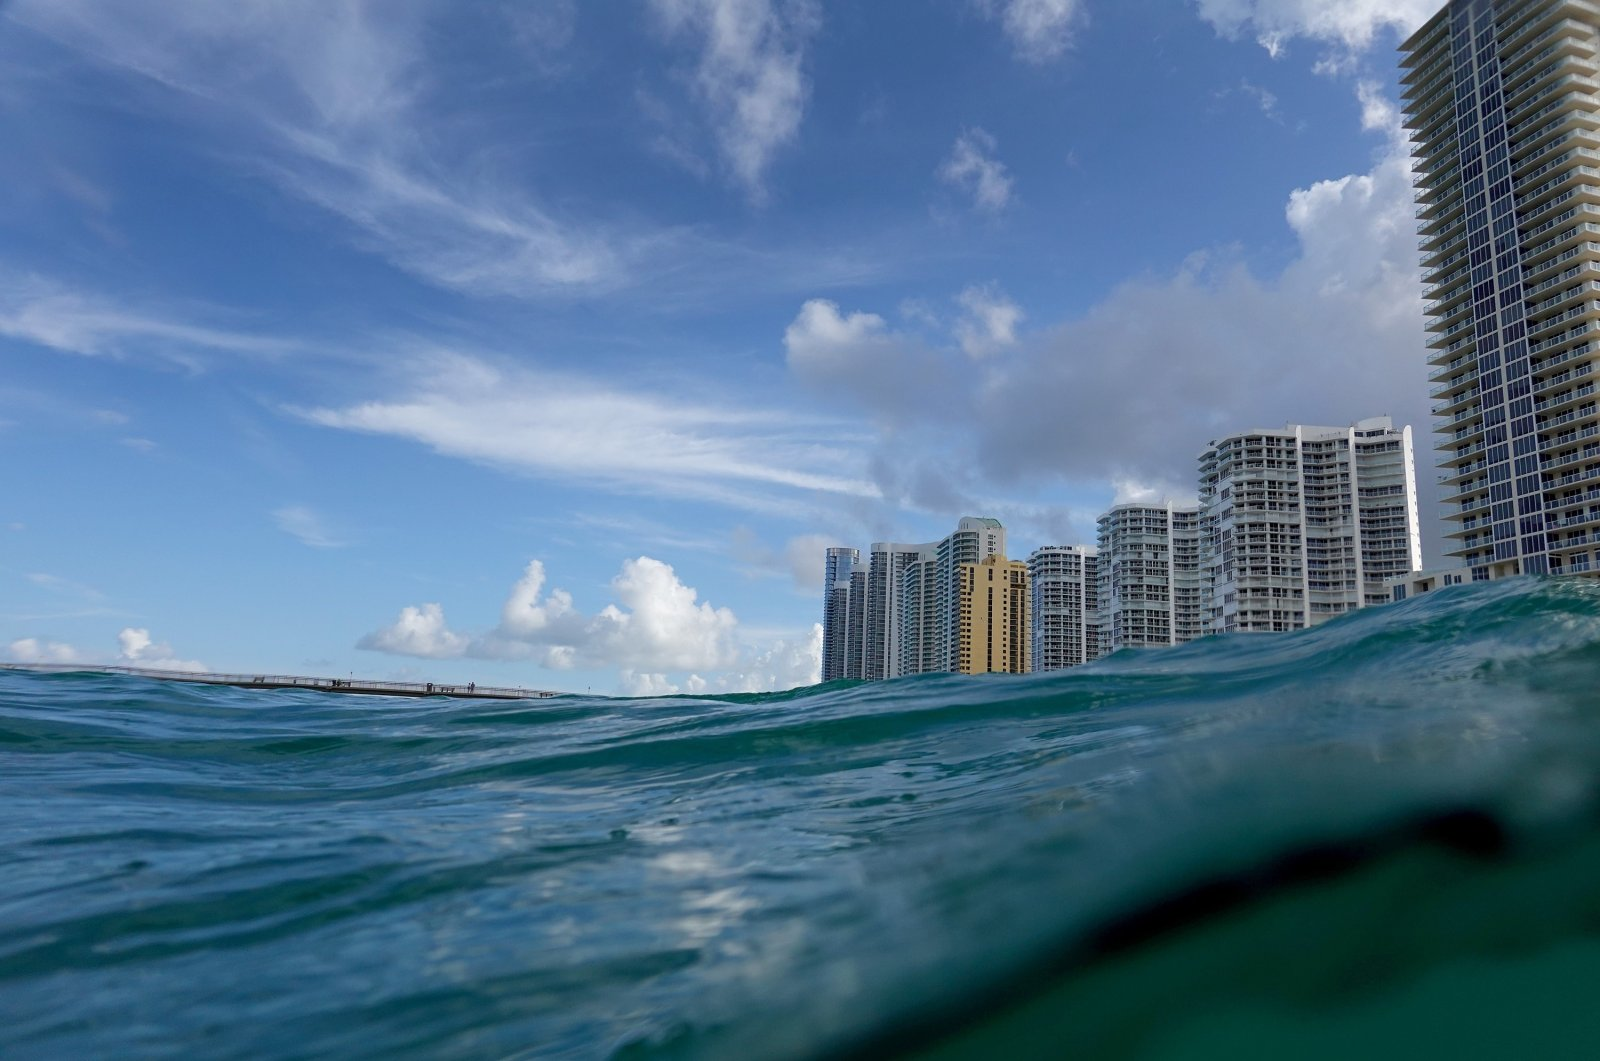 Waves lap ashore near condo buildings on the day the United Nations released a report with a dire warning for humanity in Sunny Isles, Florida, U.S., Aug. 9, 2021. (AFP Photo)